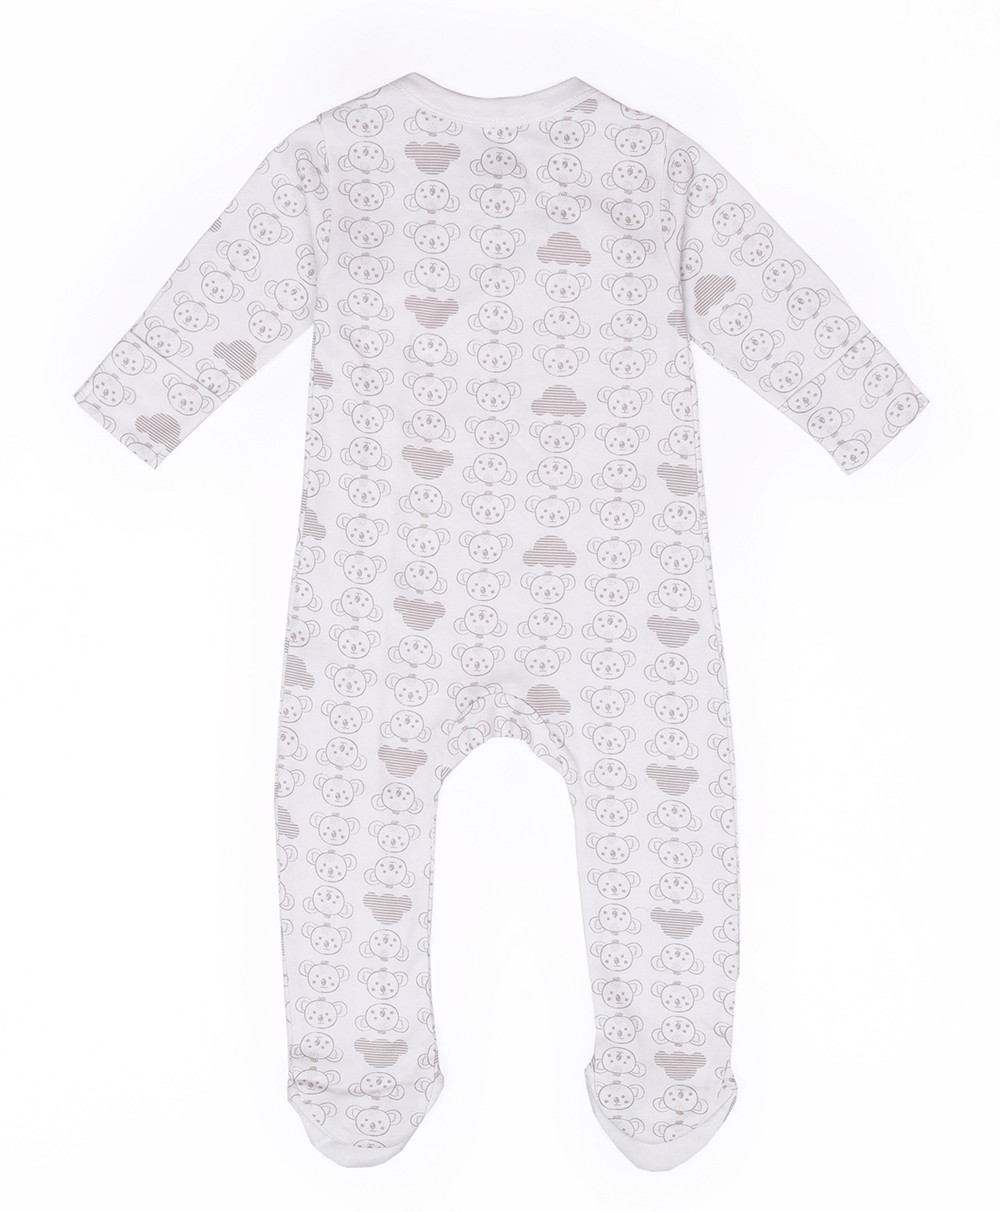 Comfy Knitted Sleep Suit - Koala (Pack of 3)